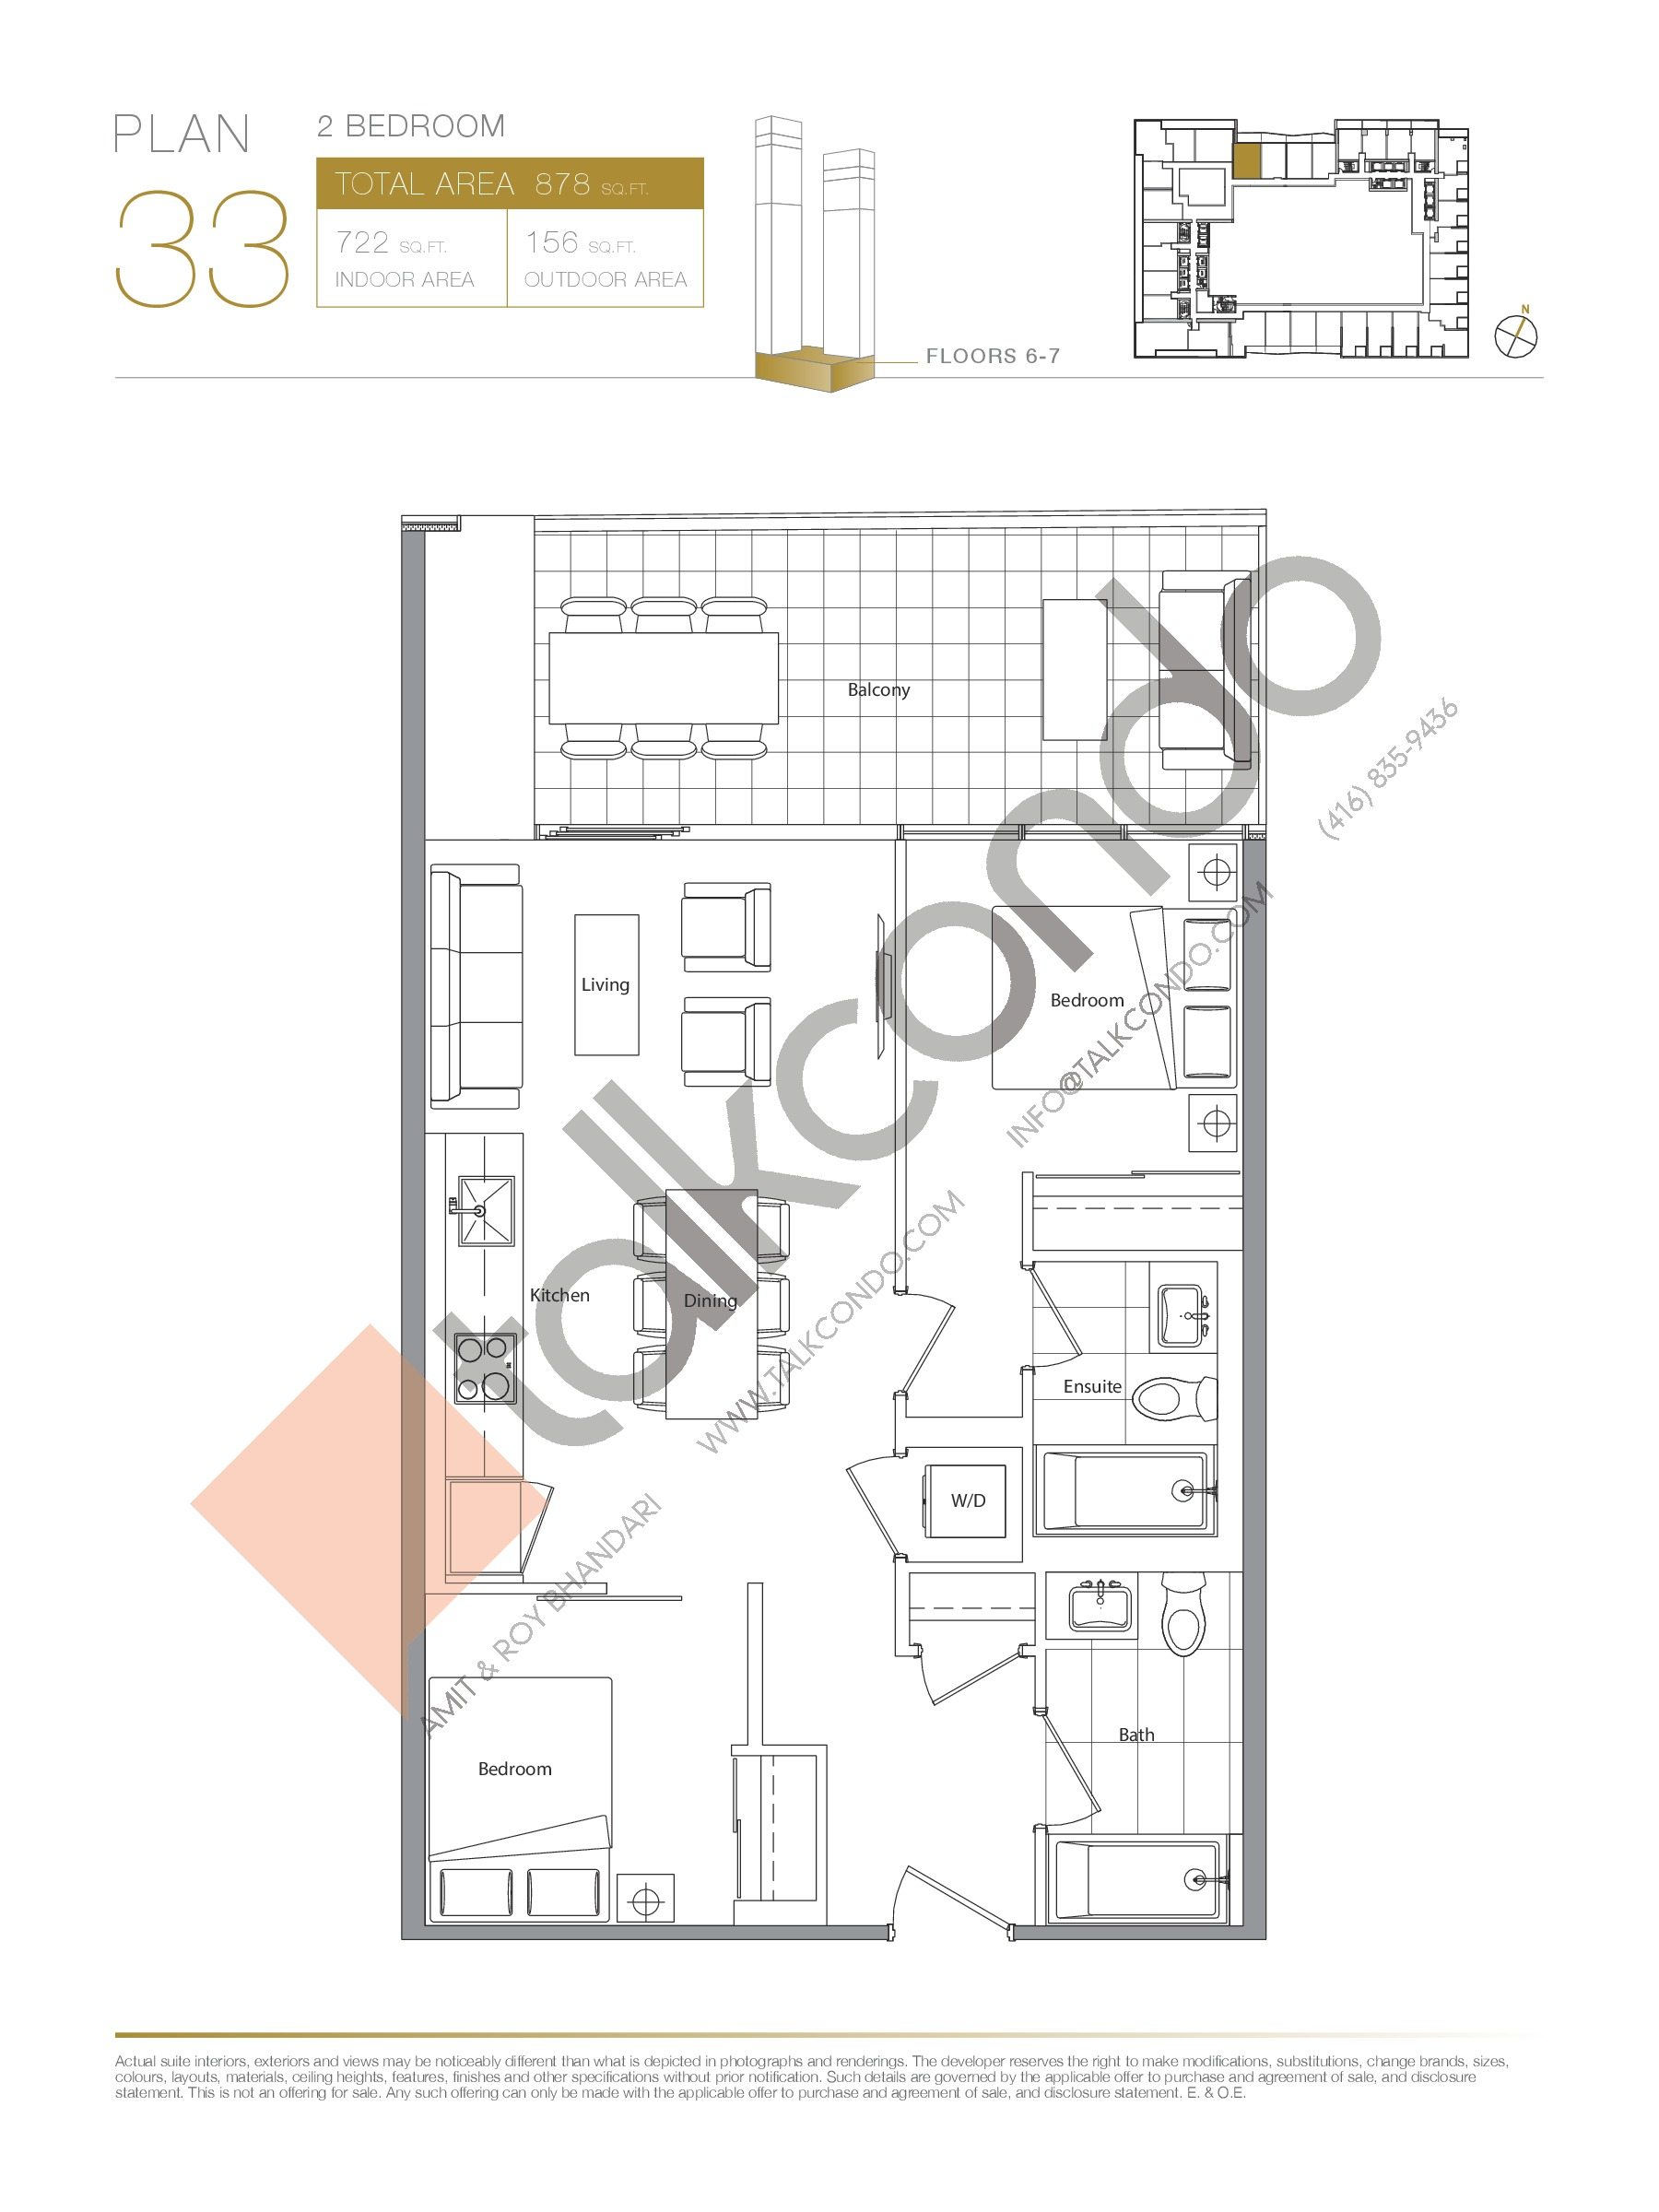 Plan 33 Floor Plan at Concord Canada House Condos - 722 sq.ft